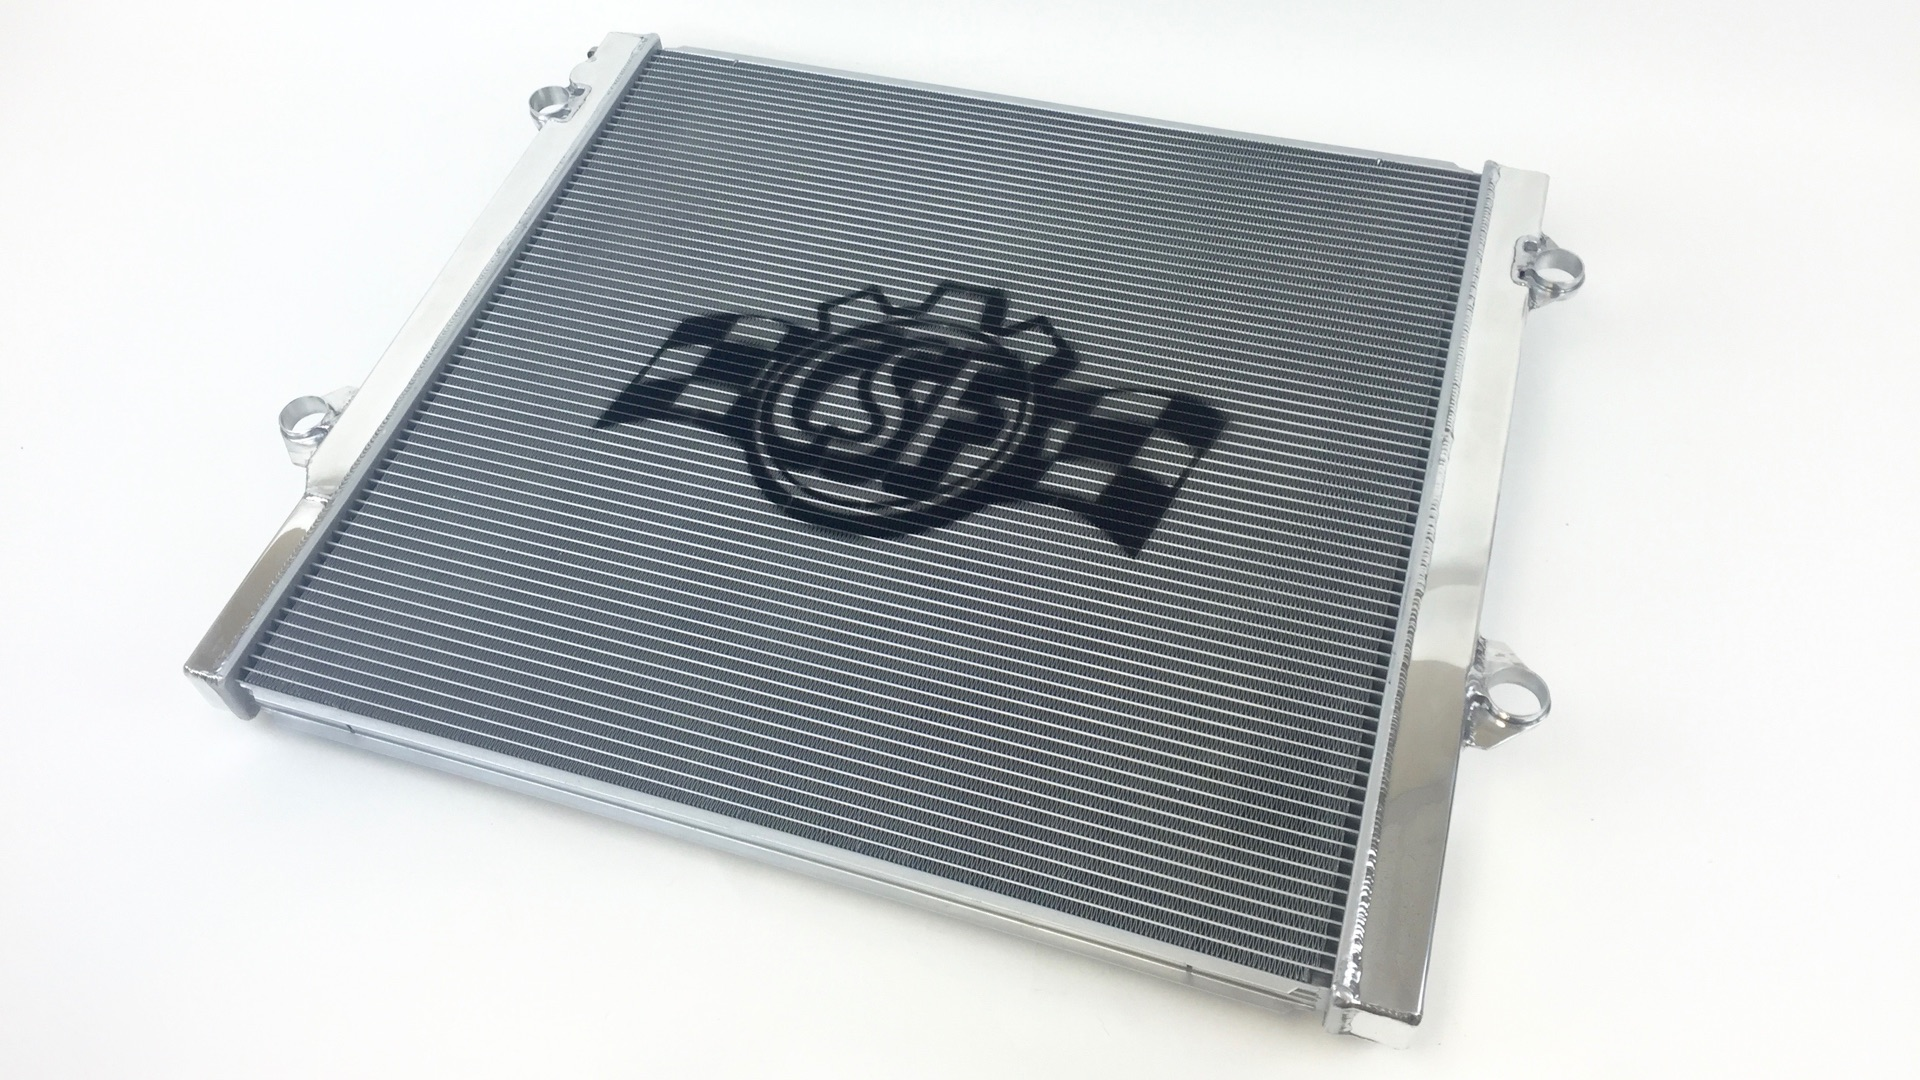 CSF Toyota FJ Cruiser Radiator (All-Aluminum High-Performance)